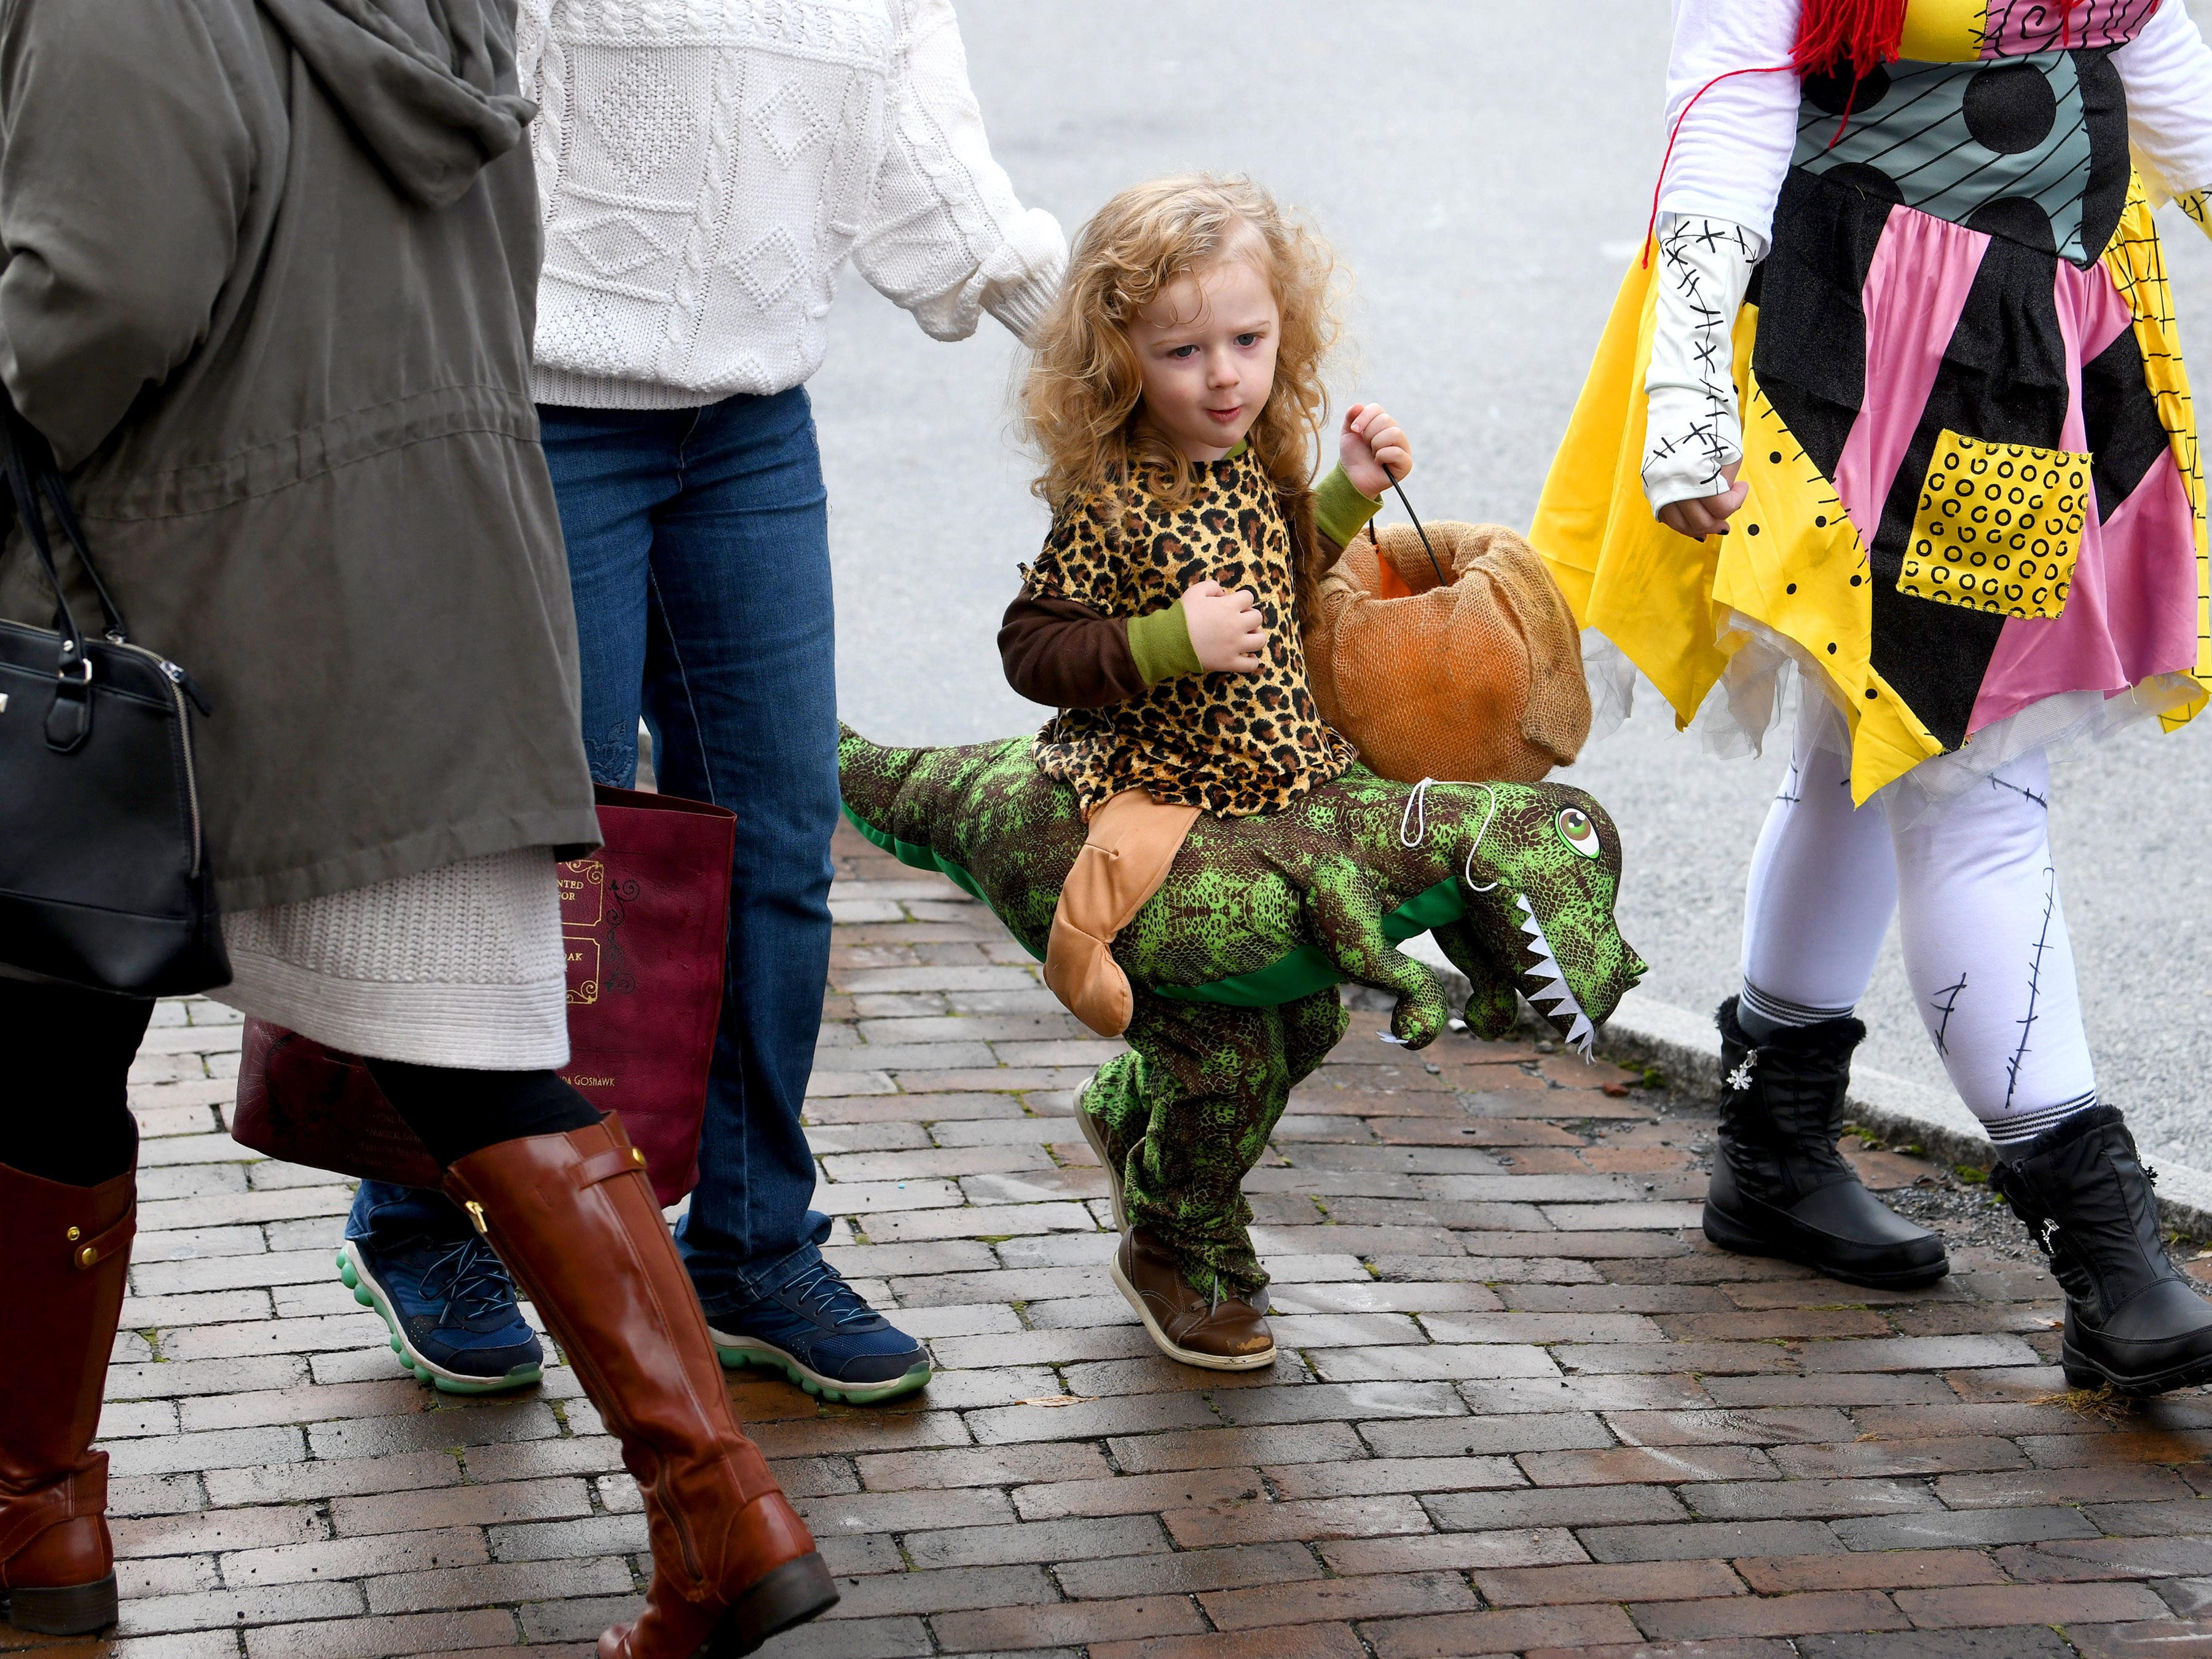 A young trick-or-treater rides a dinosaur during the annual downtown trick-or-treating event in Staunton on Saturday, Oct. 27, 2018.